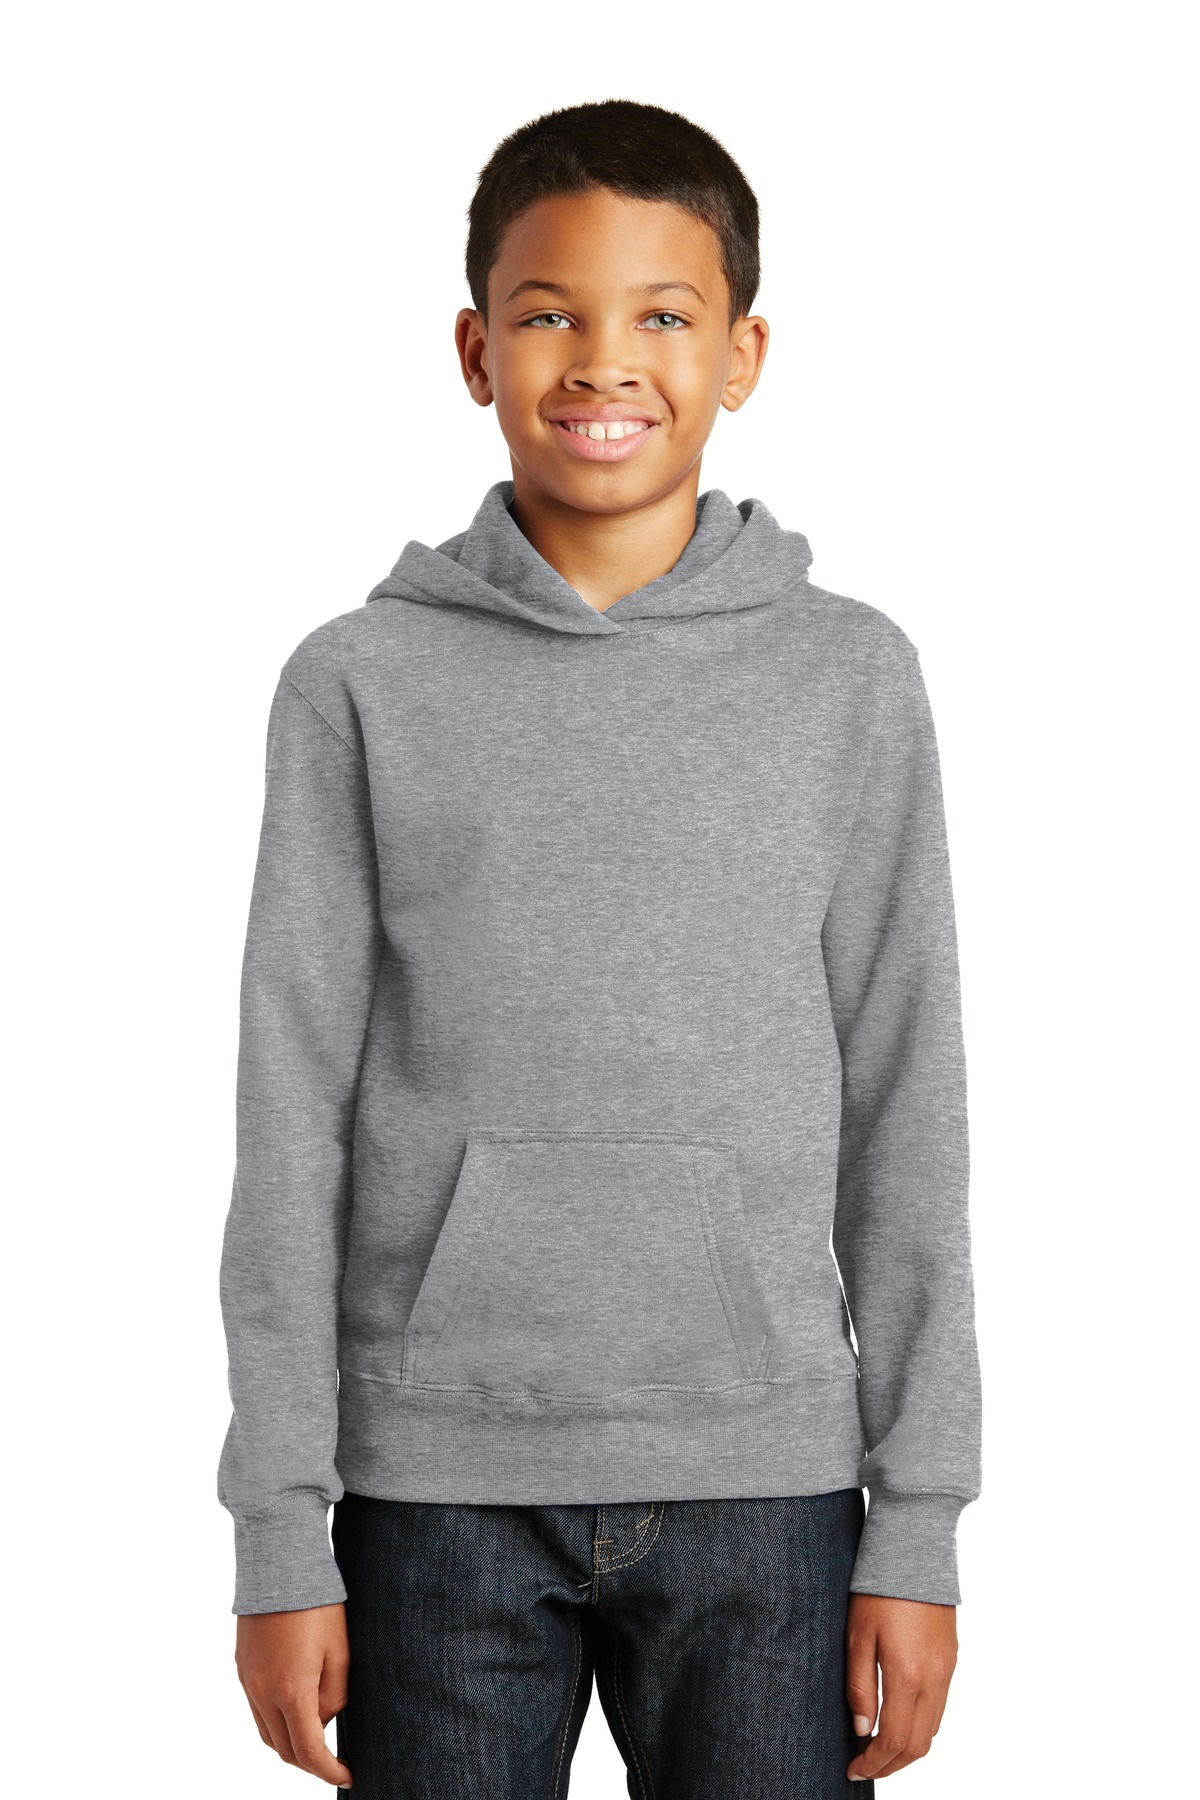 Port & Company ®  Youth Fan Favorite Fleece Pullover Hooded Sweatshirt. PC850YH - Athletic Heather